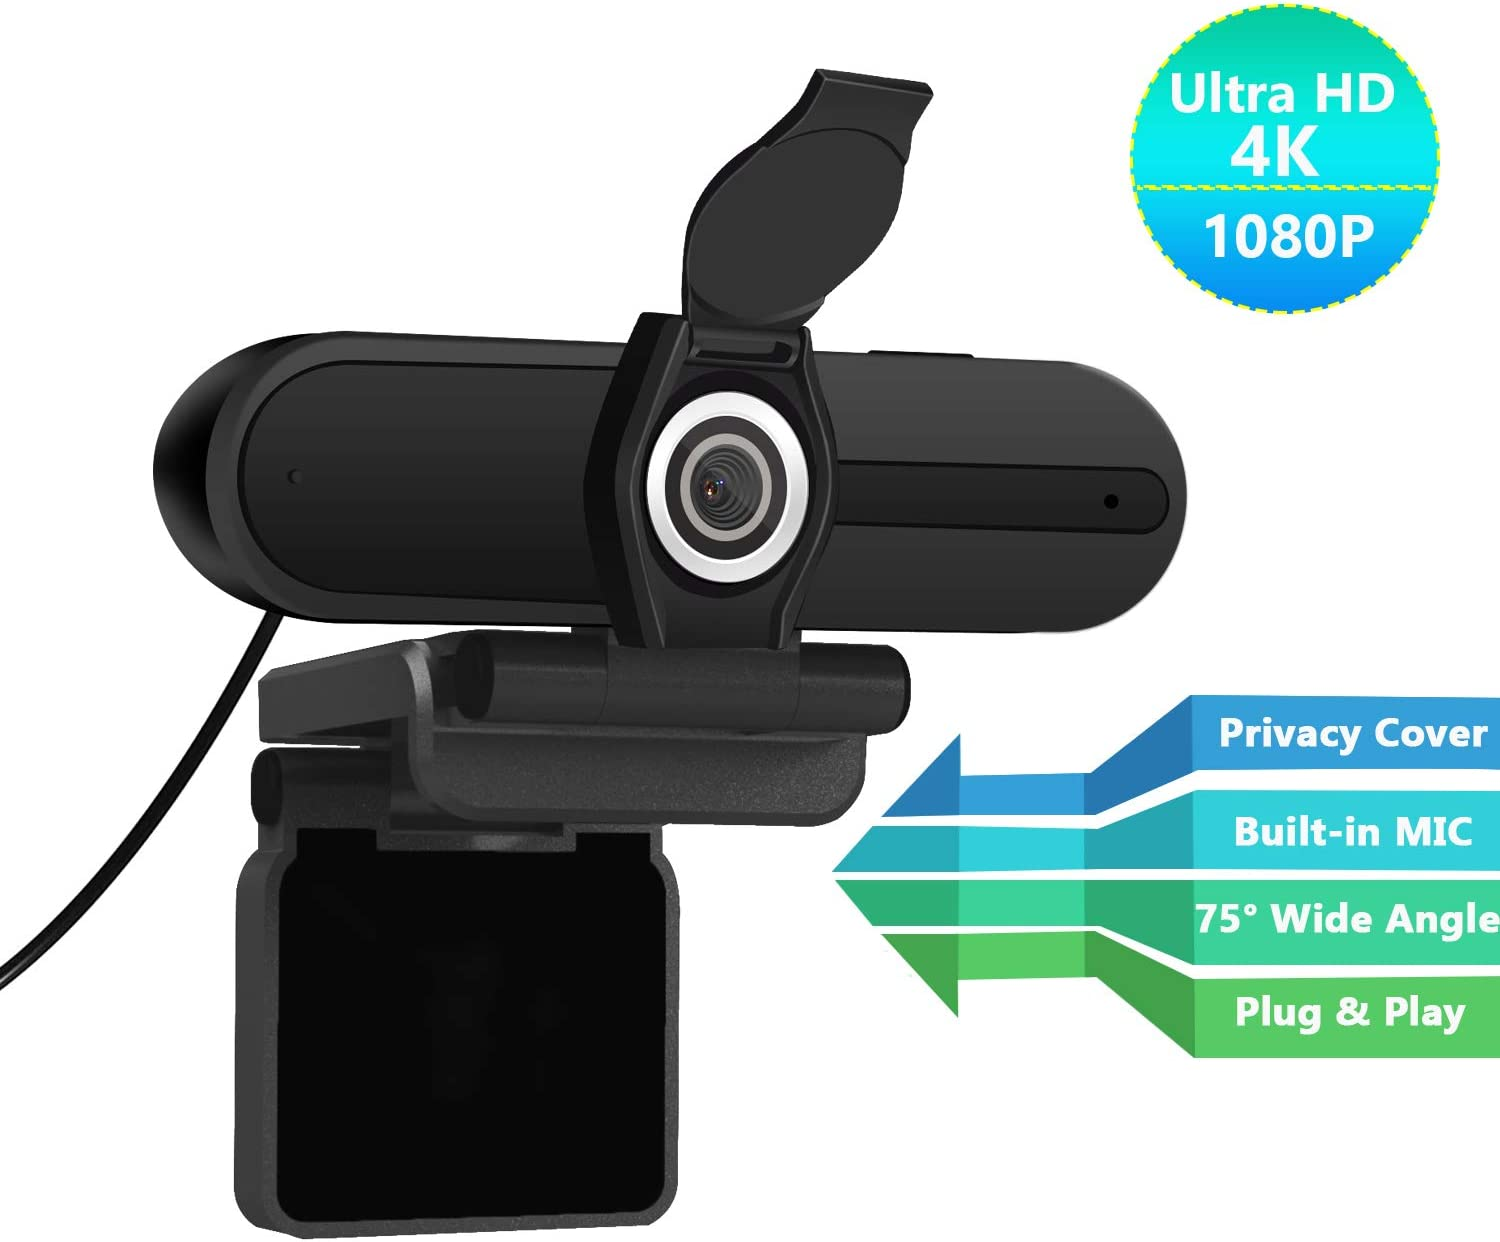 4K Webcam, 8MP Computer PC Web Camera with Privacy Shutter, 75 Degree Wide Angle, 4K Laptop USB Webcam with Microphone for Desktop LCD Monitor/Mac Video Conference/Streaming/Calling/Recording